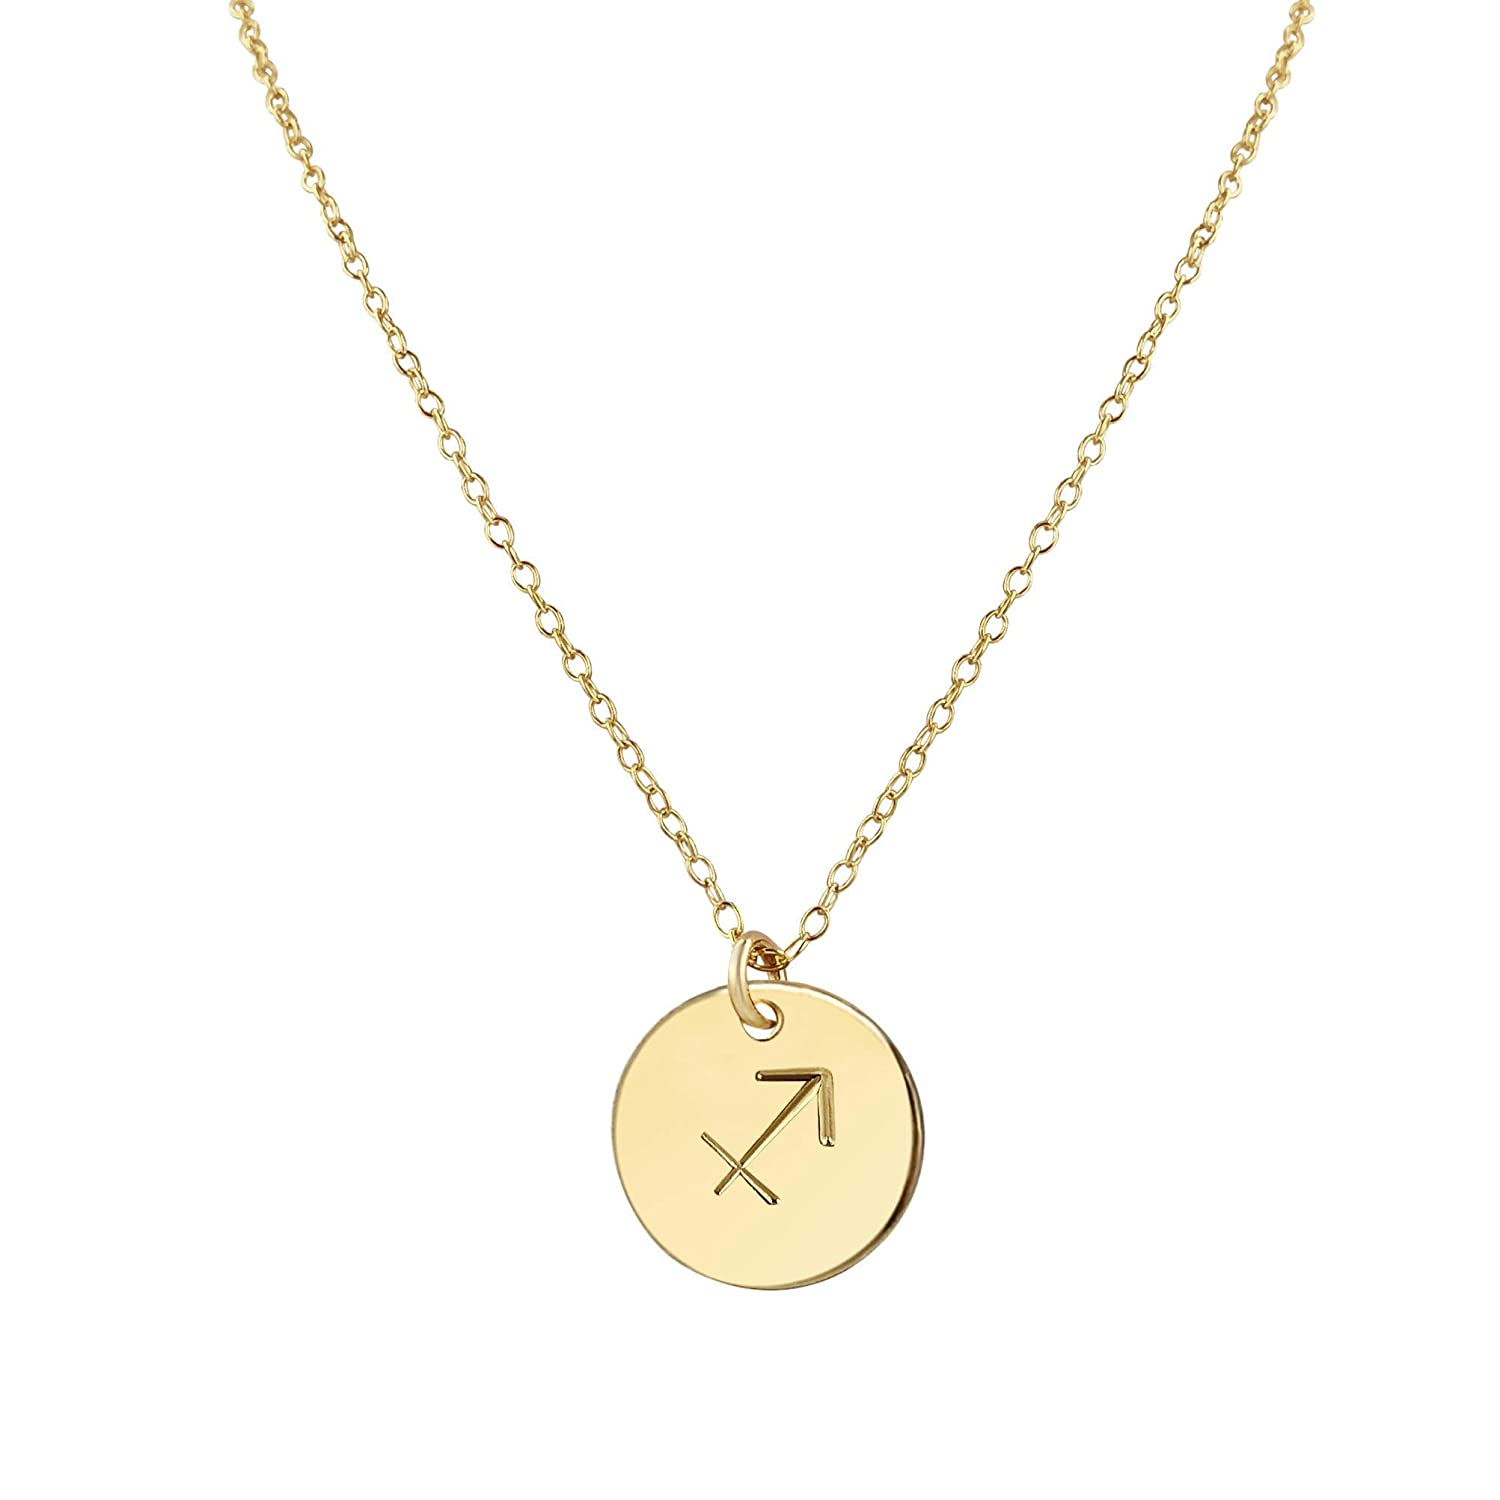 Gold Pendant Necklace Gift for Her Hammered Charm Necklace Gold Stamp Necklace Layering Necklace